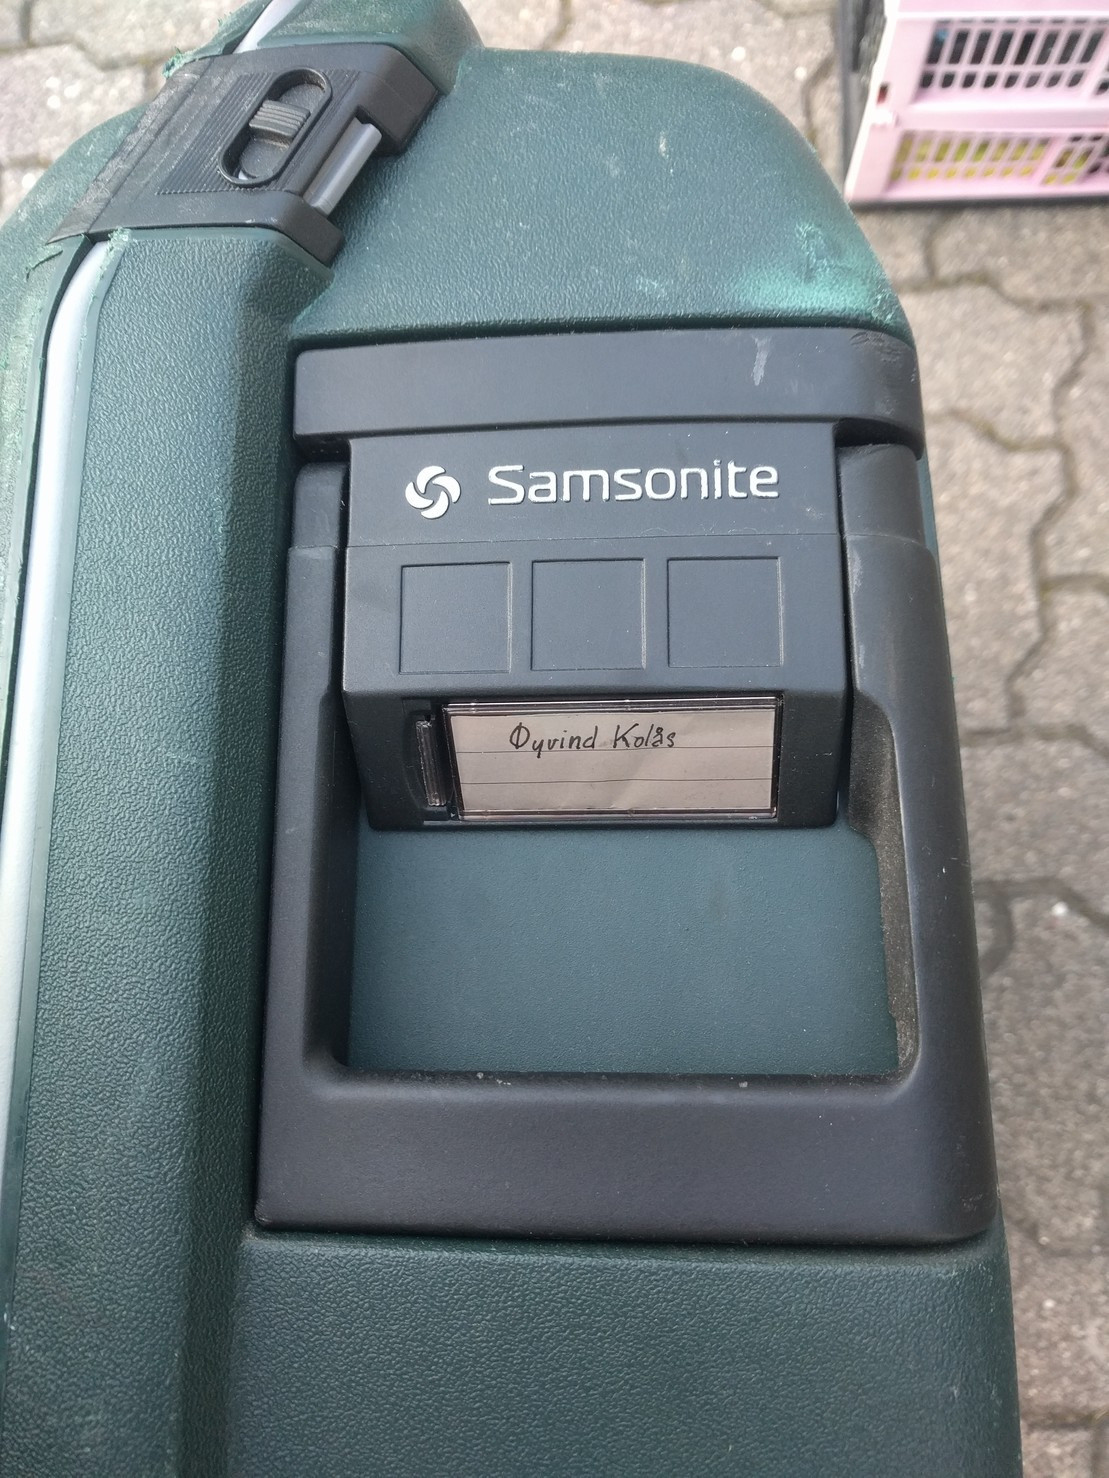 tag on a green suit samsonite case.